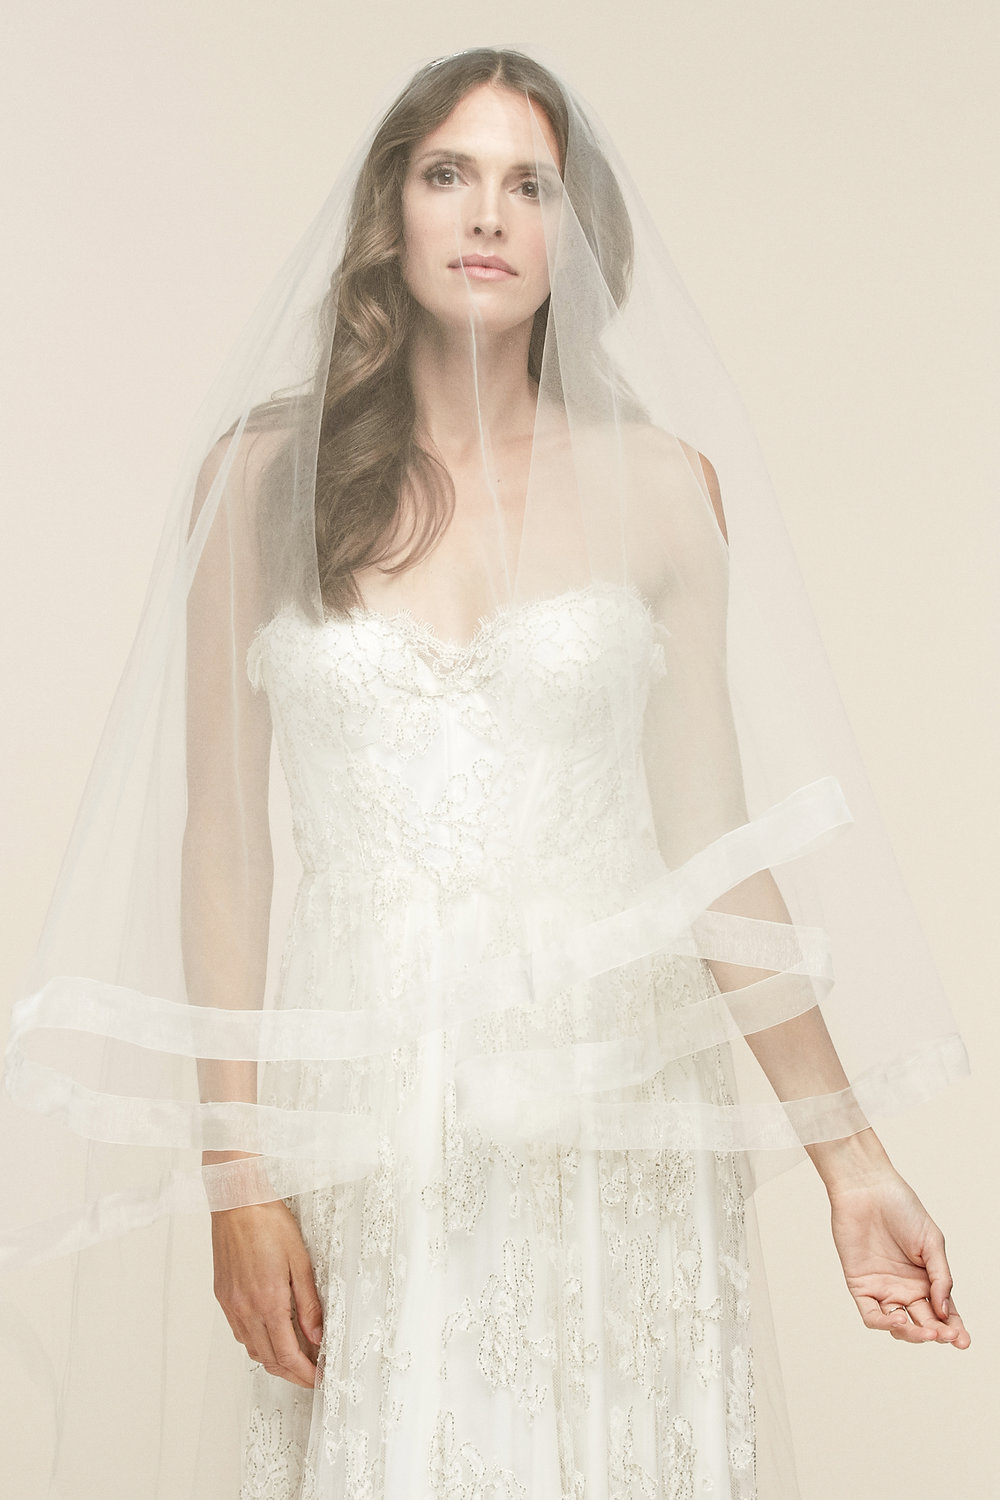 Milan Veil   Details- 1.5″ sheer organza edge with blusher  Available in all colors and lengths